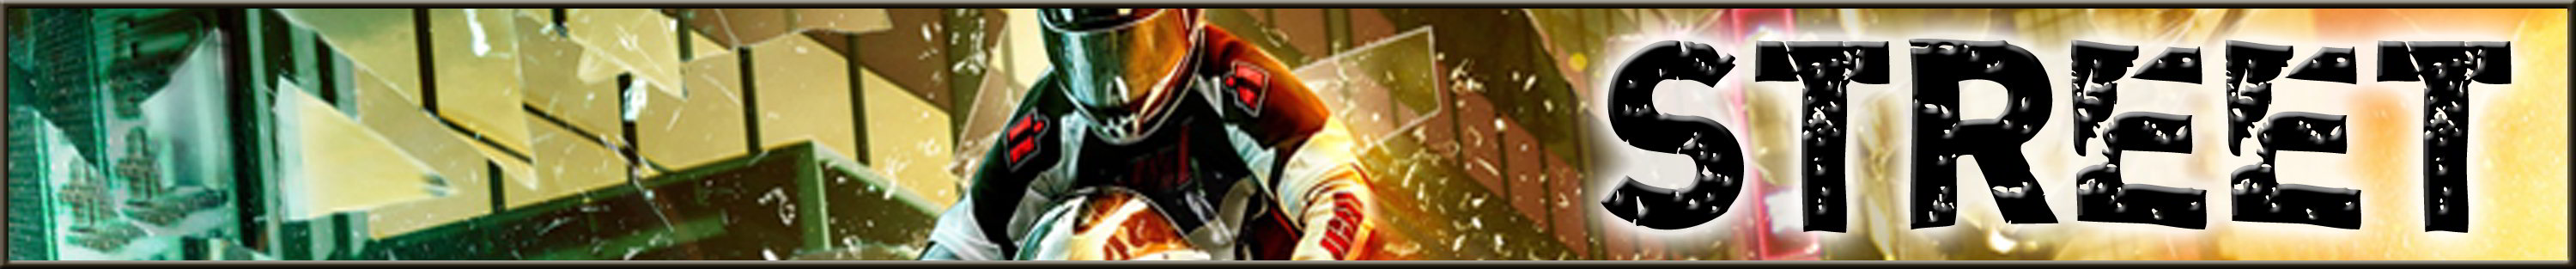 Motorcycle Clothing & Parts